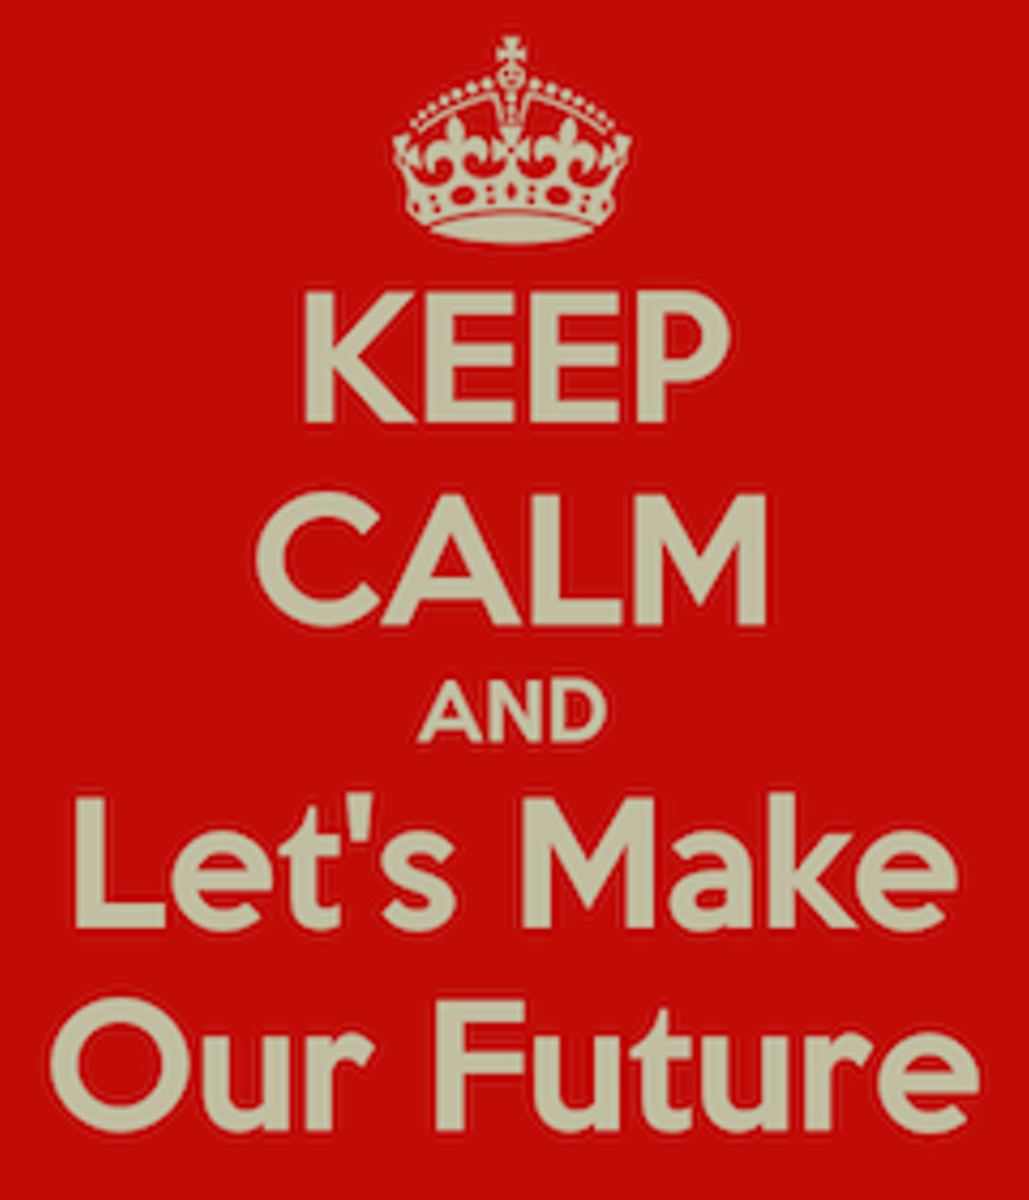 Keep calm and let's make our future